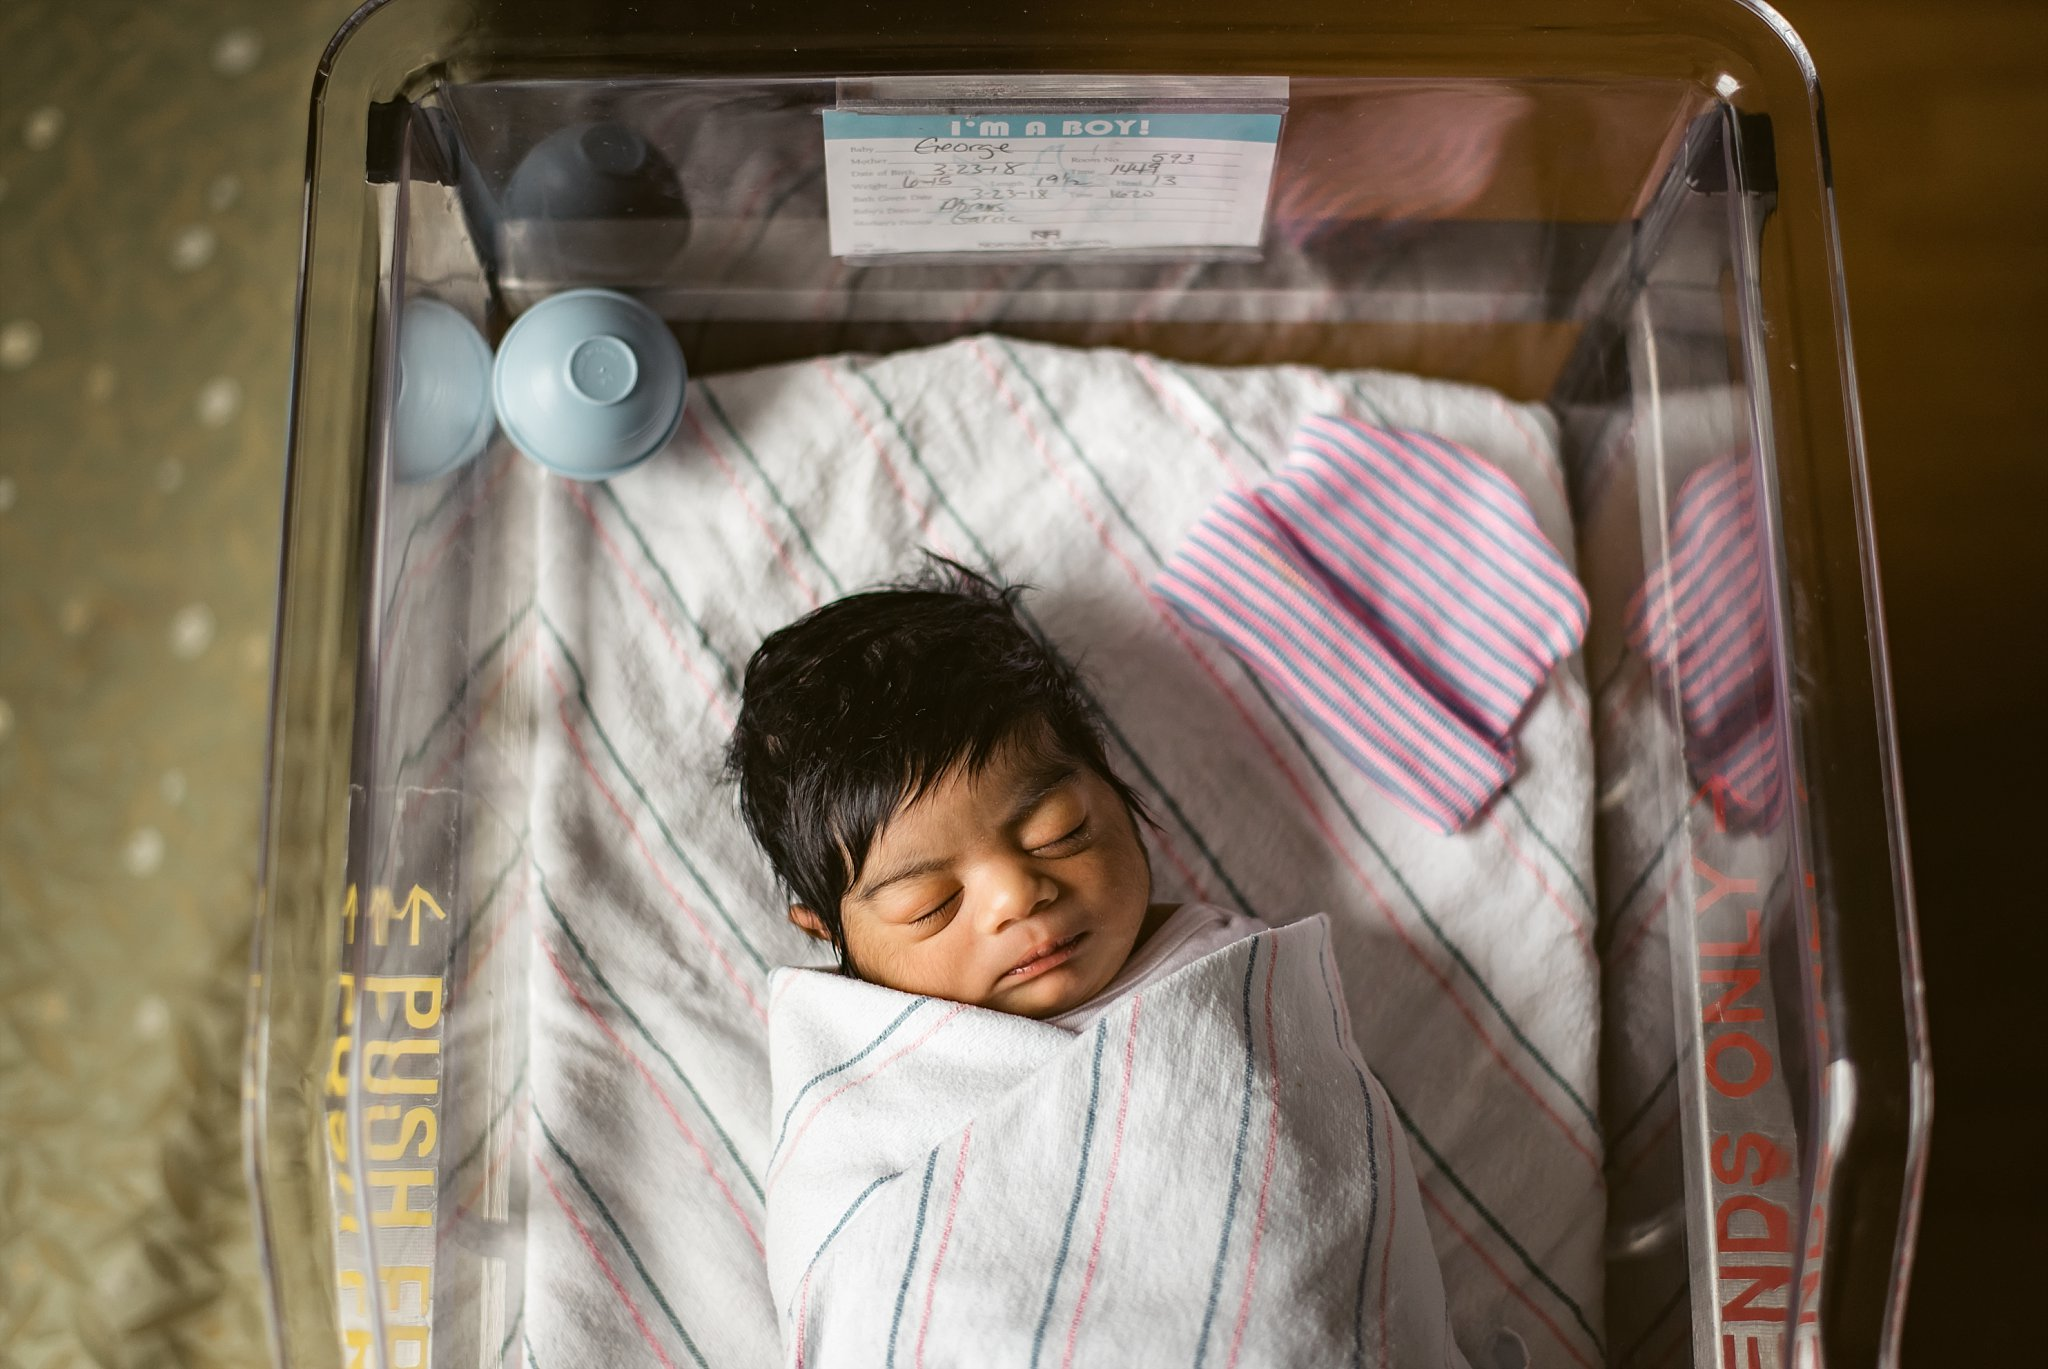 Newborn Baby Boy in hospital bassinet at Northside Atlanta Hospital